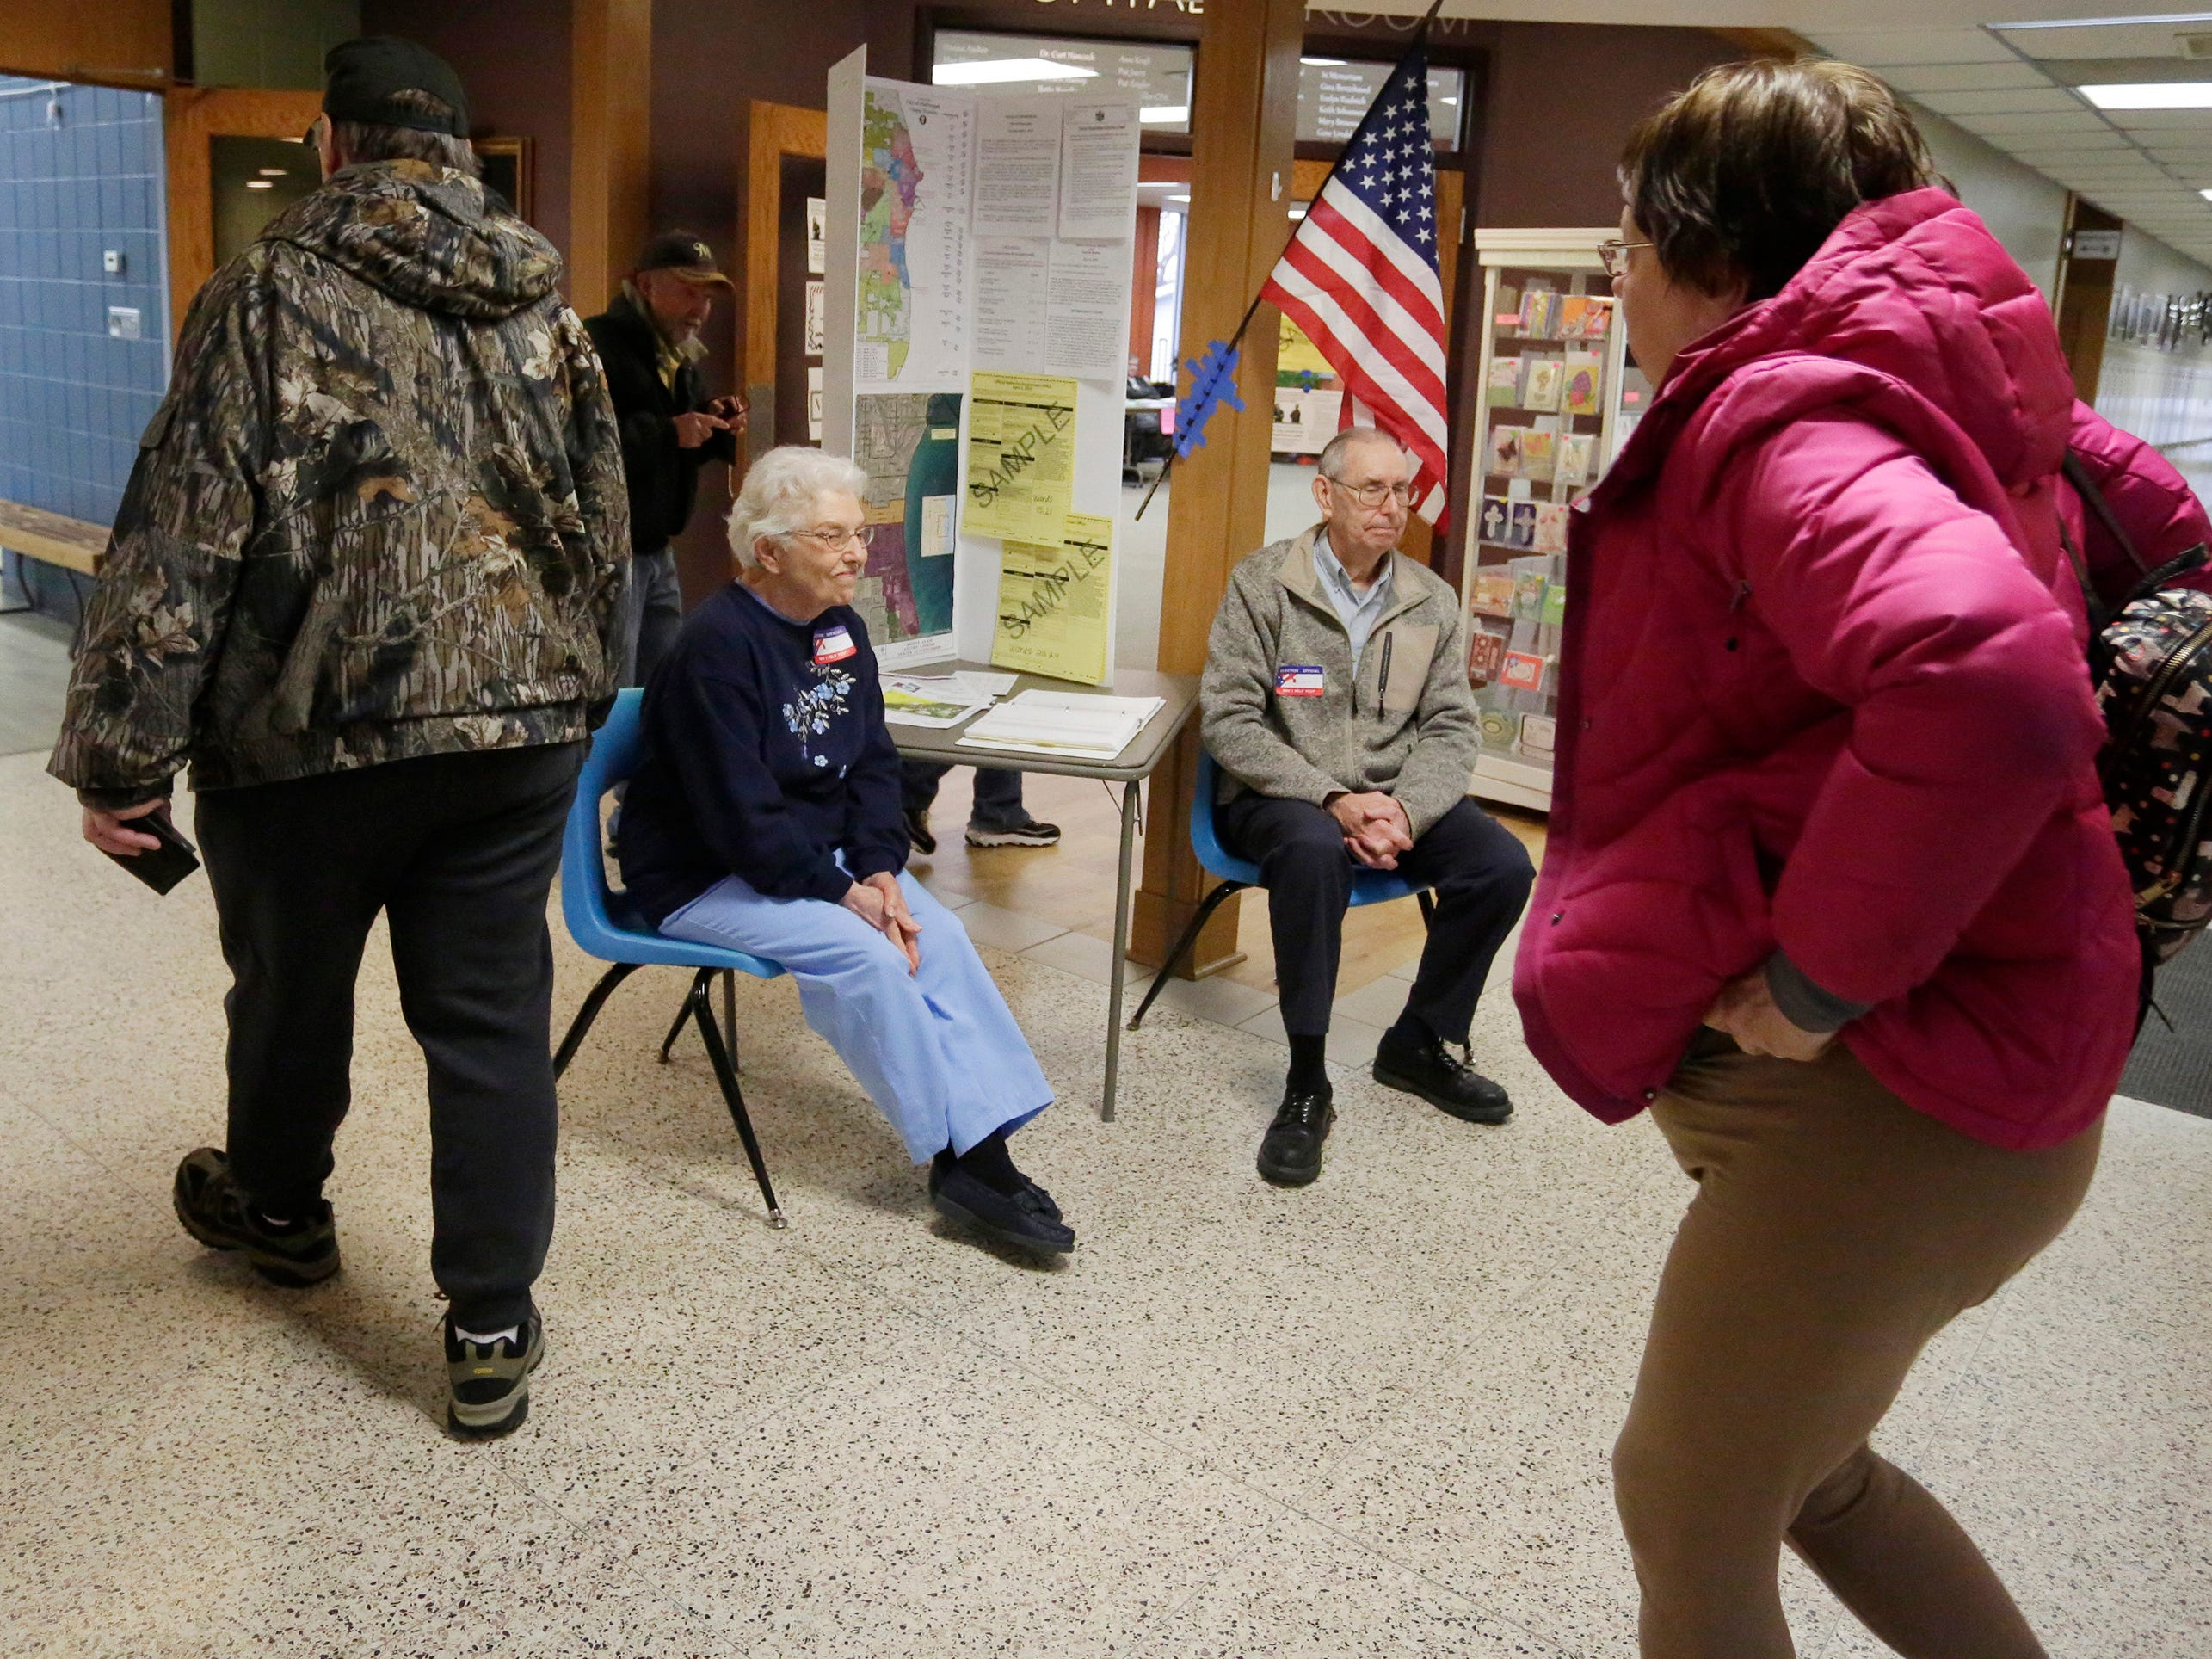 Poll workers Laverne Mueller, left, and Jerry Smith, right, wait to help voters at the Bethany Reformed church polls, Tuesday, April 2, 2019, in Sheboygan, Wis.